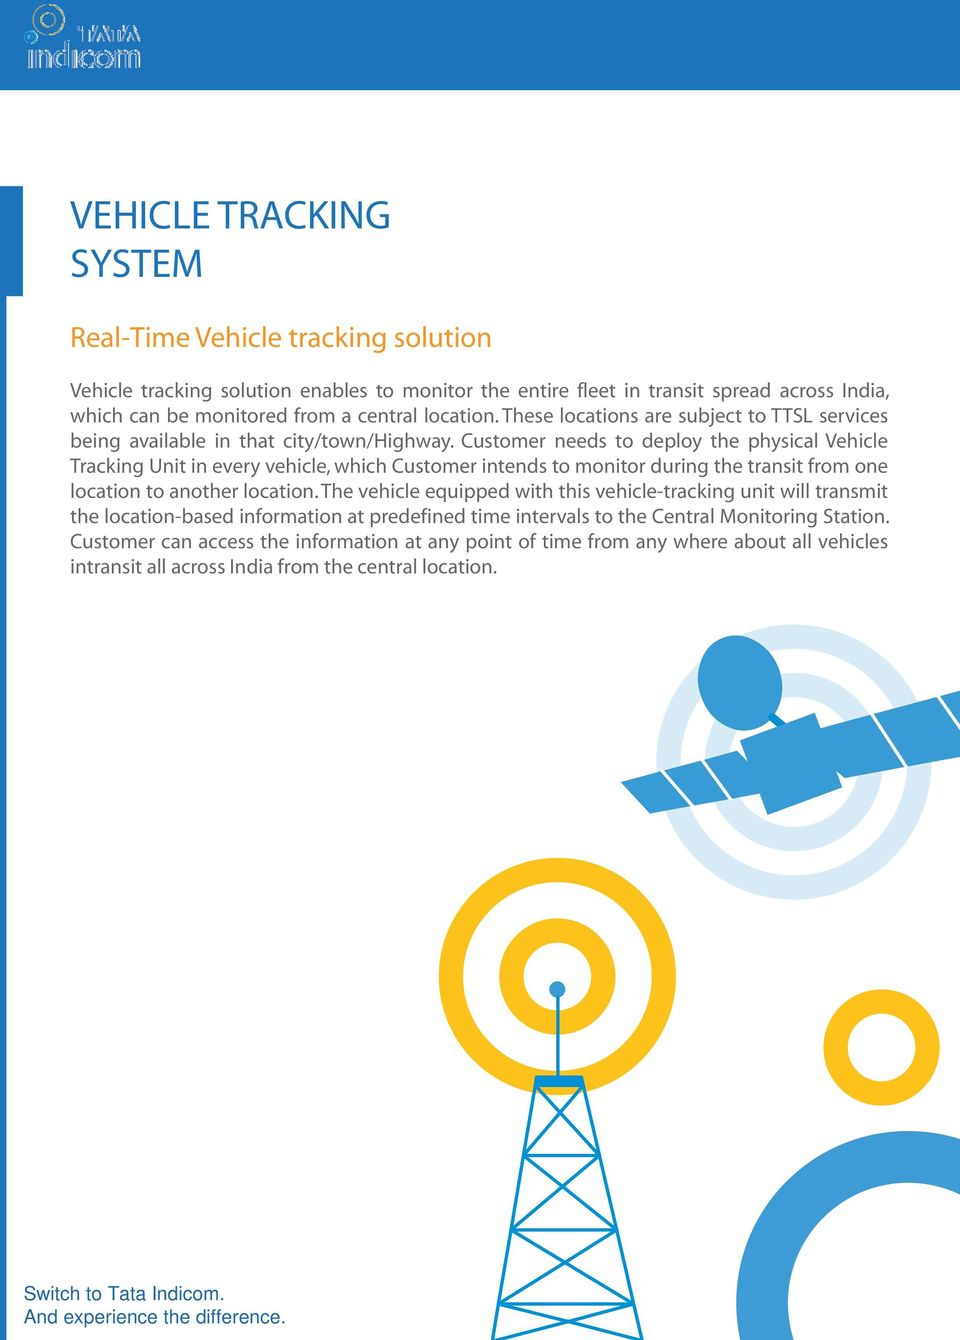 Customer needs to deploy the physical Vehicle Tracking Unit in every vehicle, which Customer intends to monitor during the transit from one location to another location.